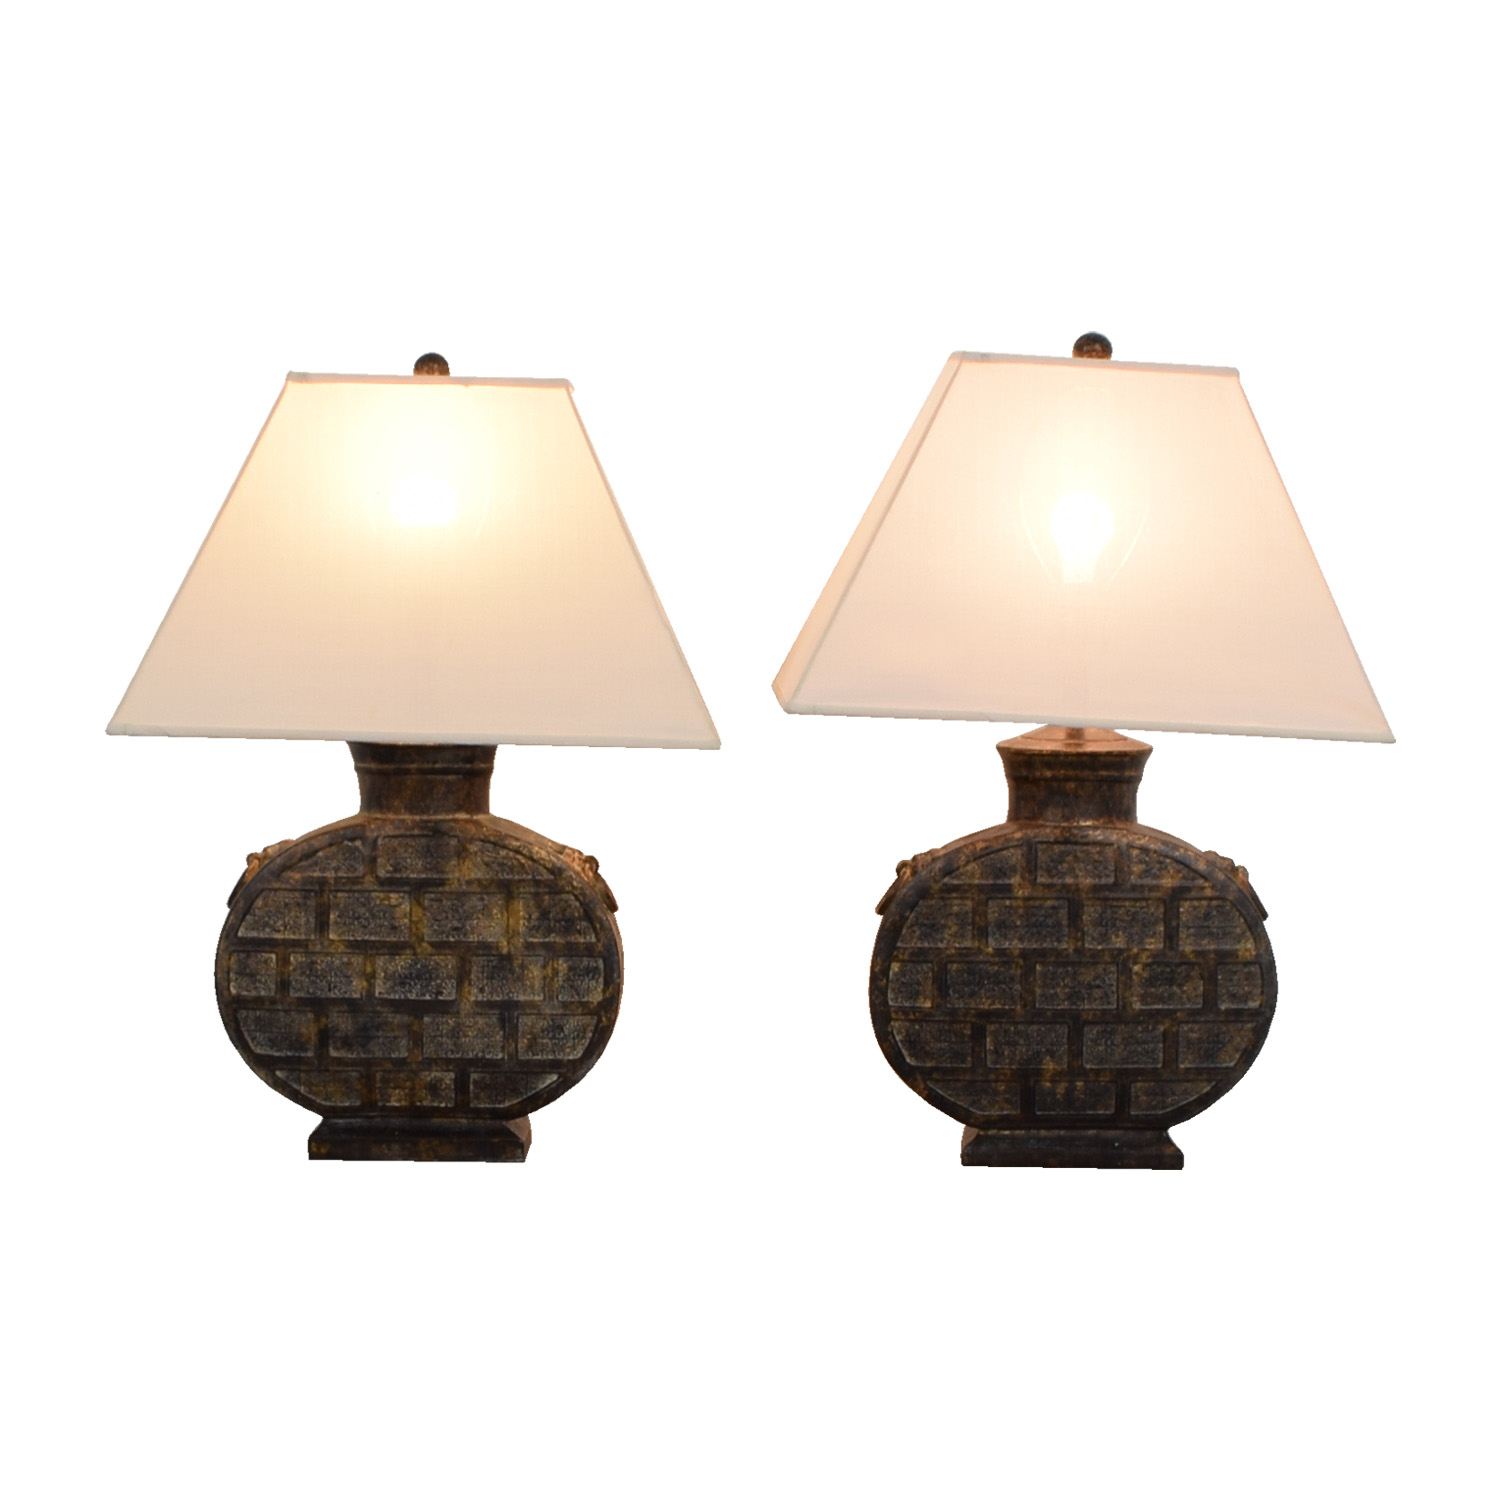 86 off ethan allen ethan allen round table lamps decor ethan allen ethan allen round table lamps nyc aloadofball